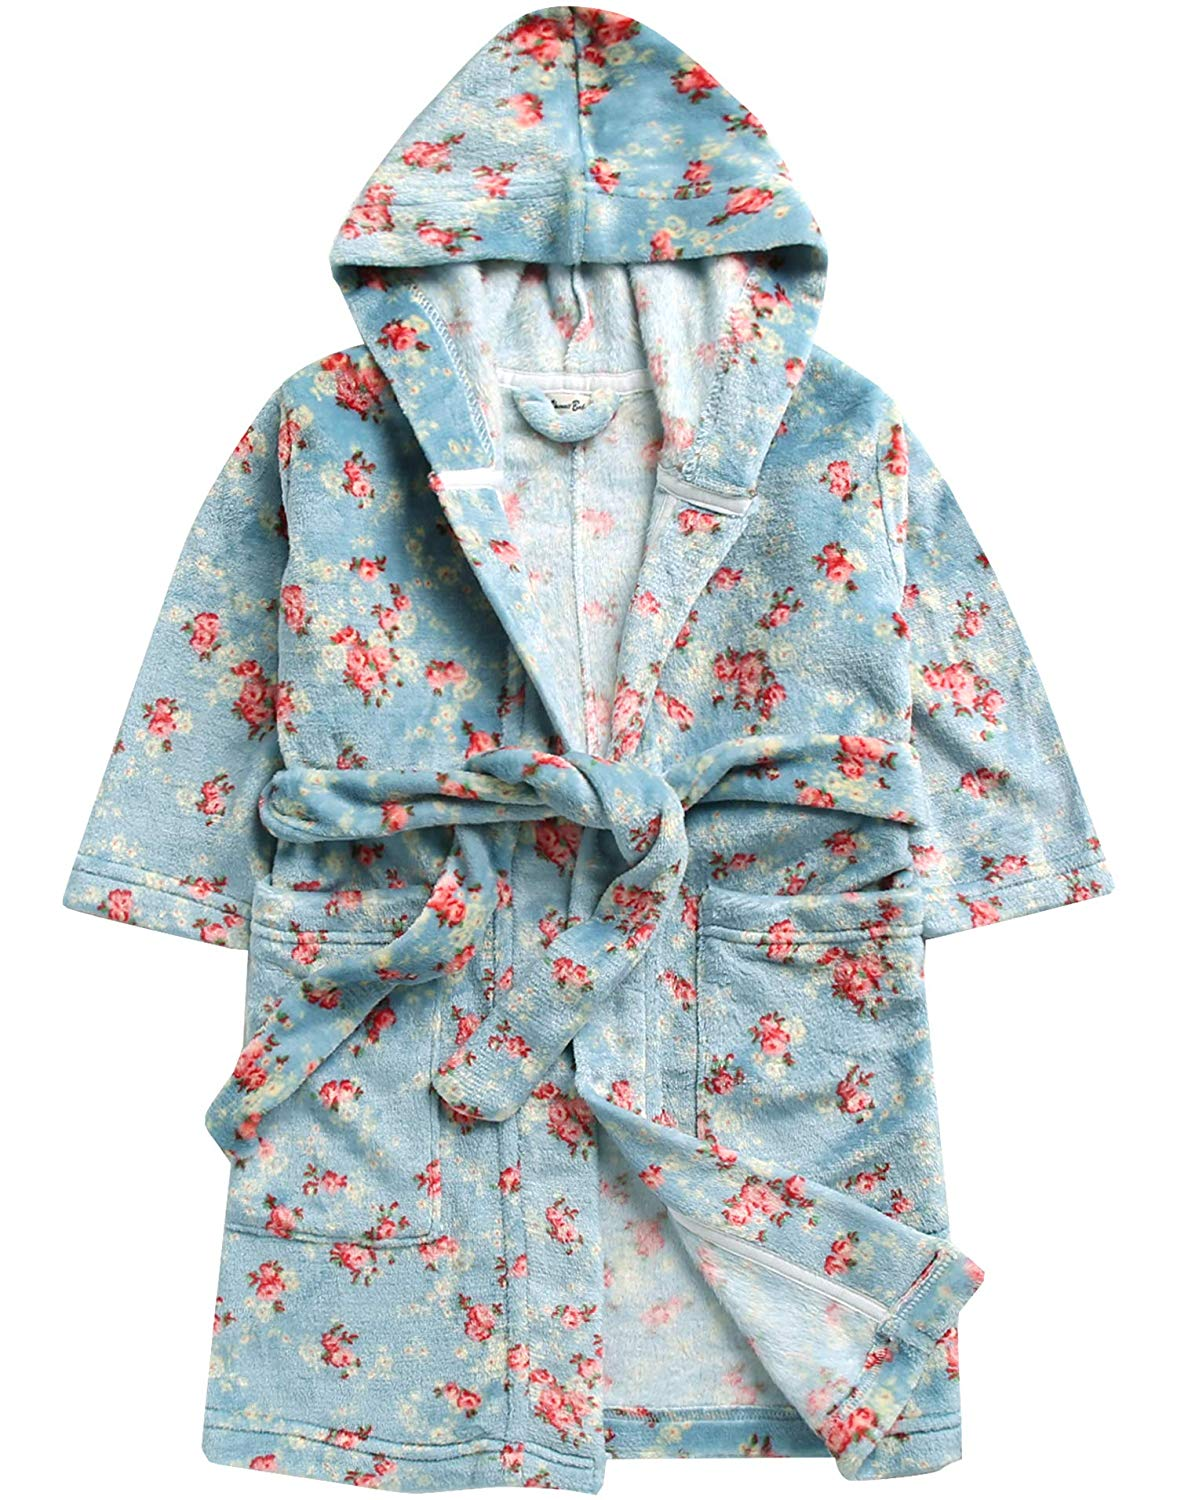 Flower Blue Hooded Robe